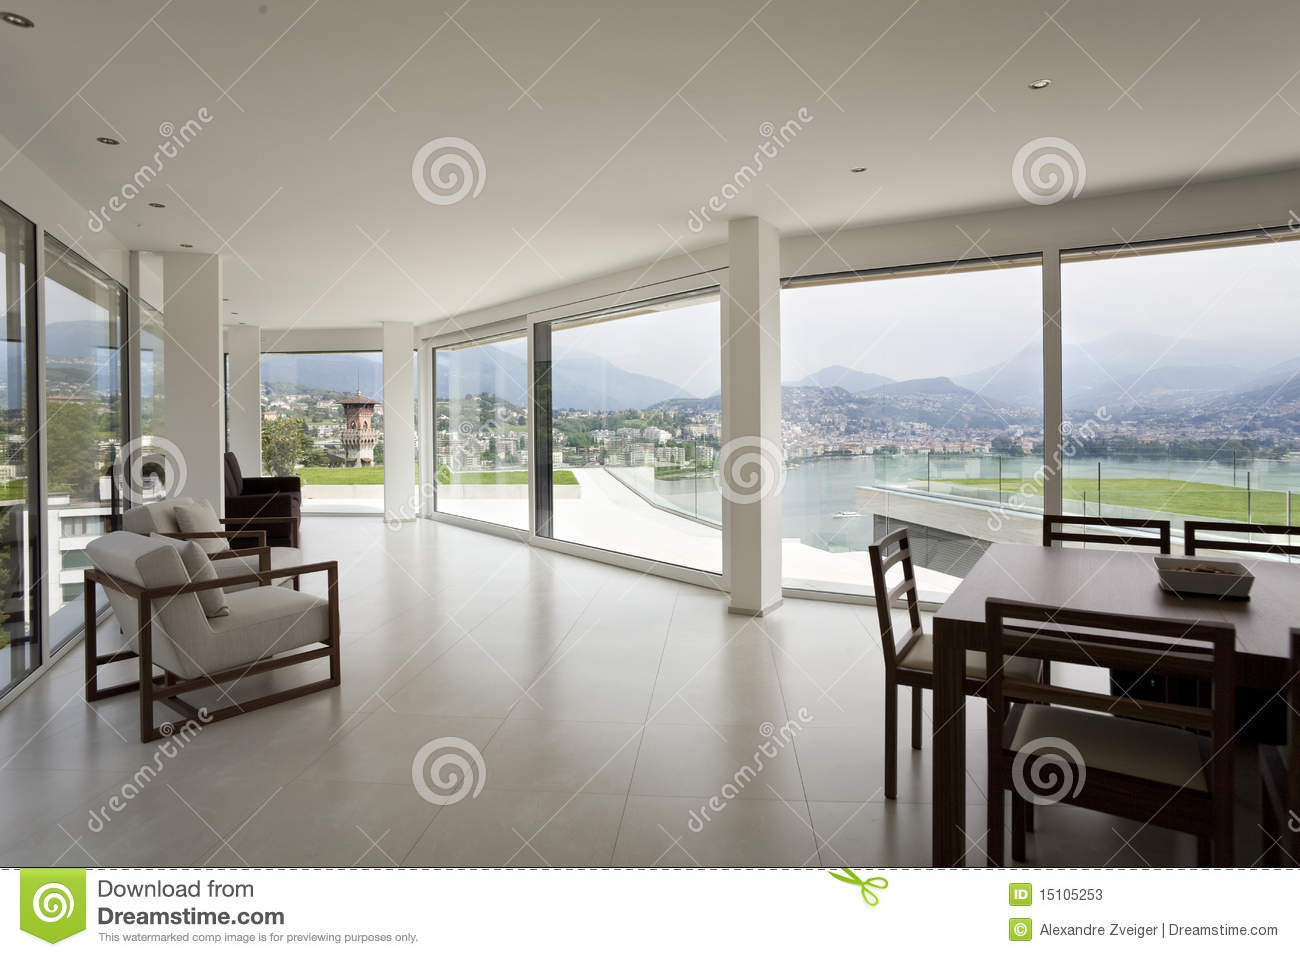 Bel int rieur d 39 une maison moderne photos stock image for Interieur maison moderne photos